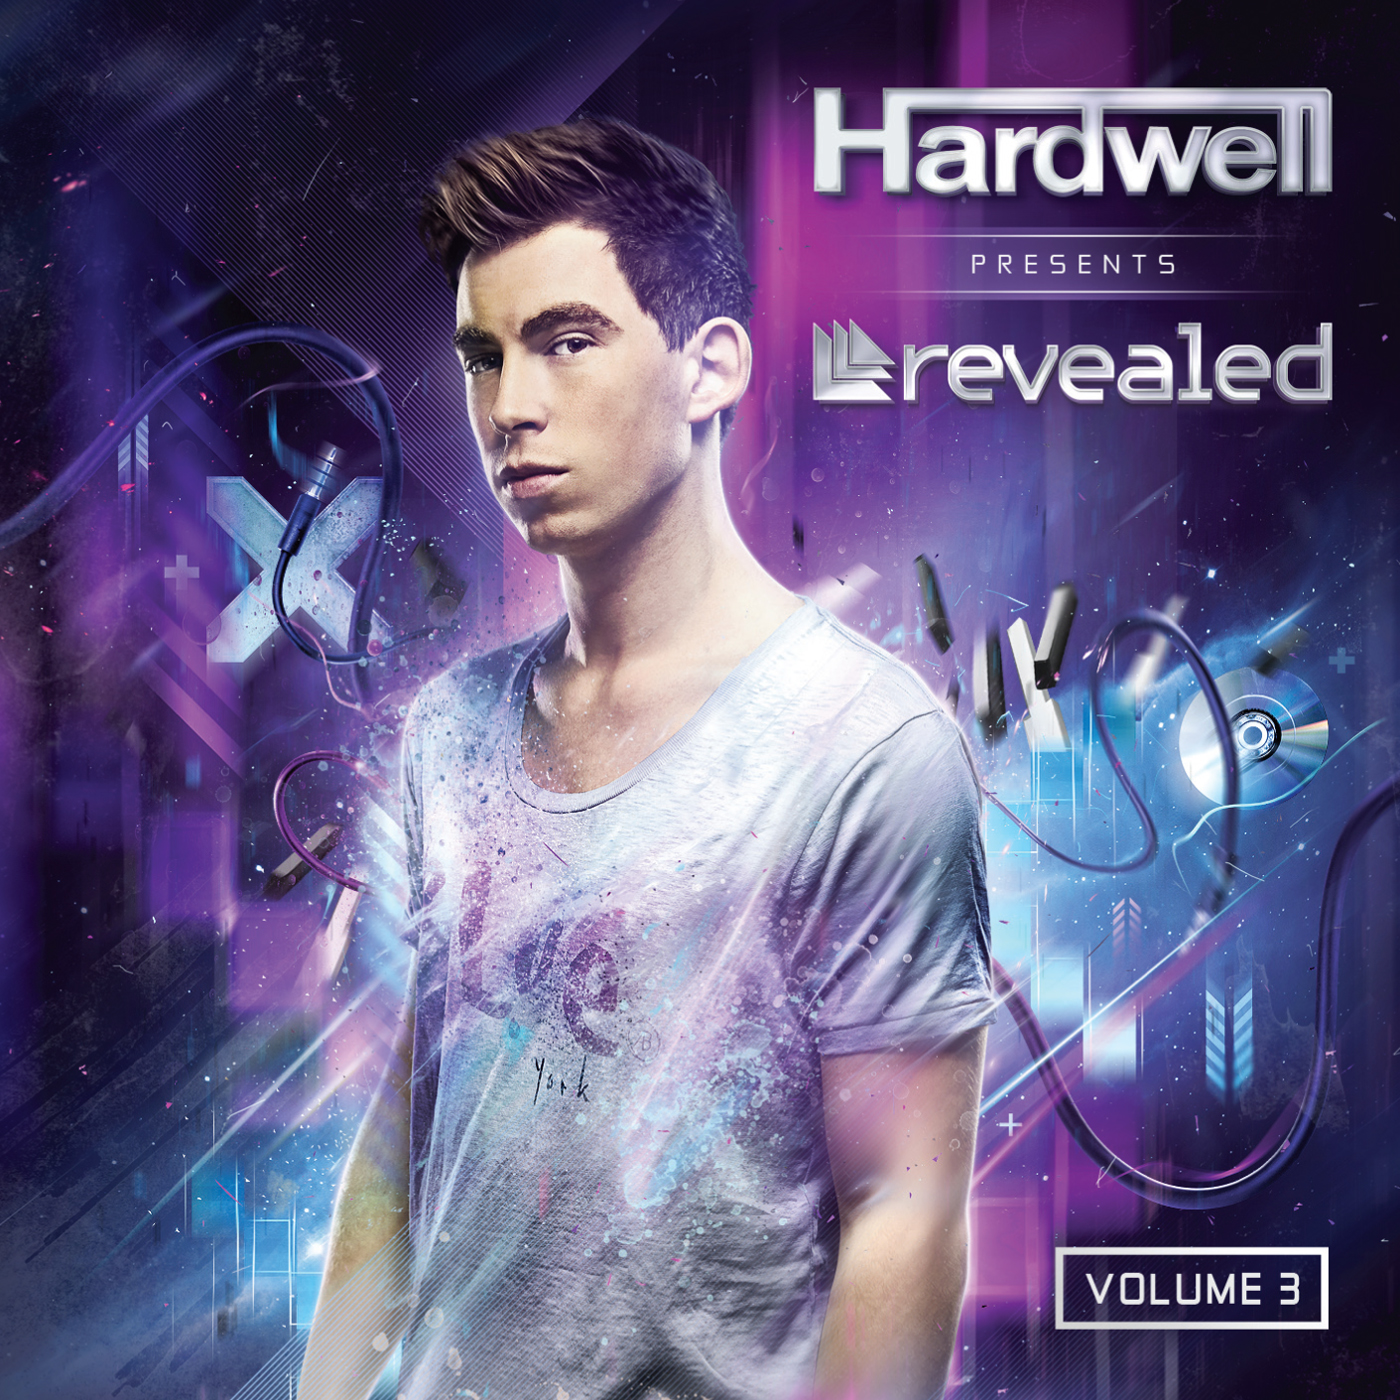 Hardwell Presents Revealed Vol. 3 (2012)